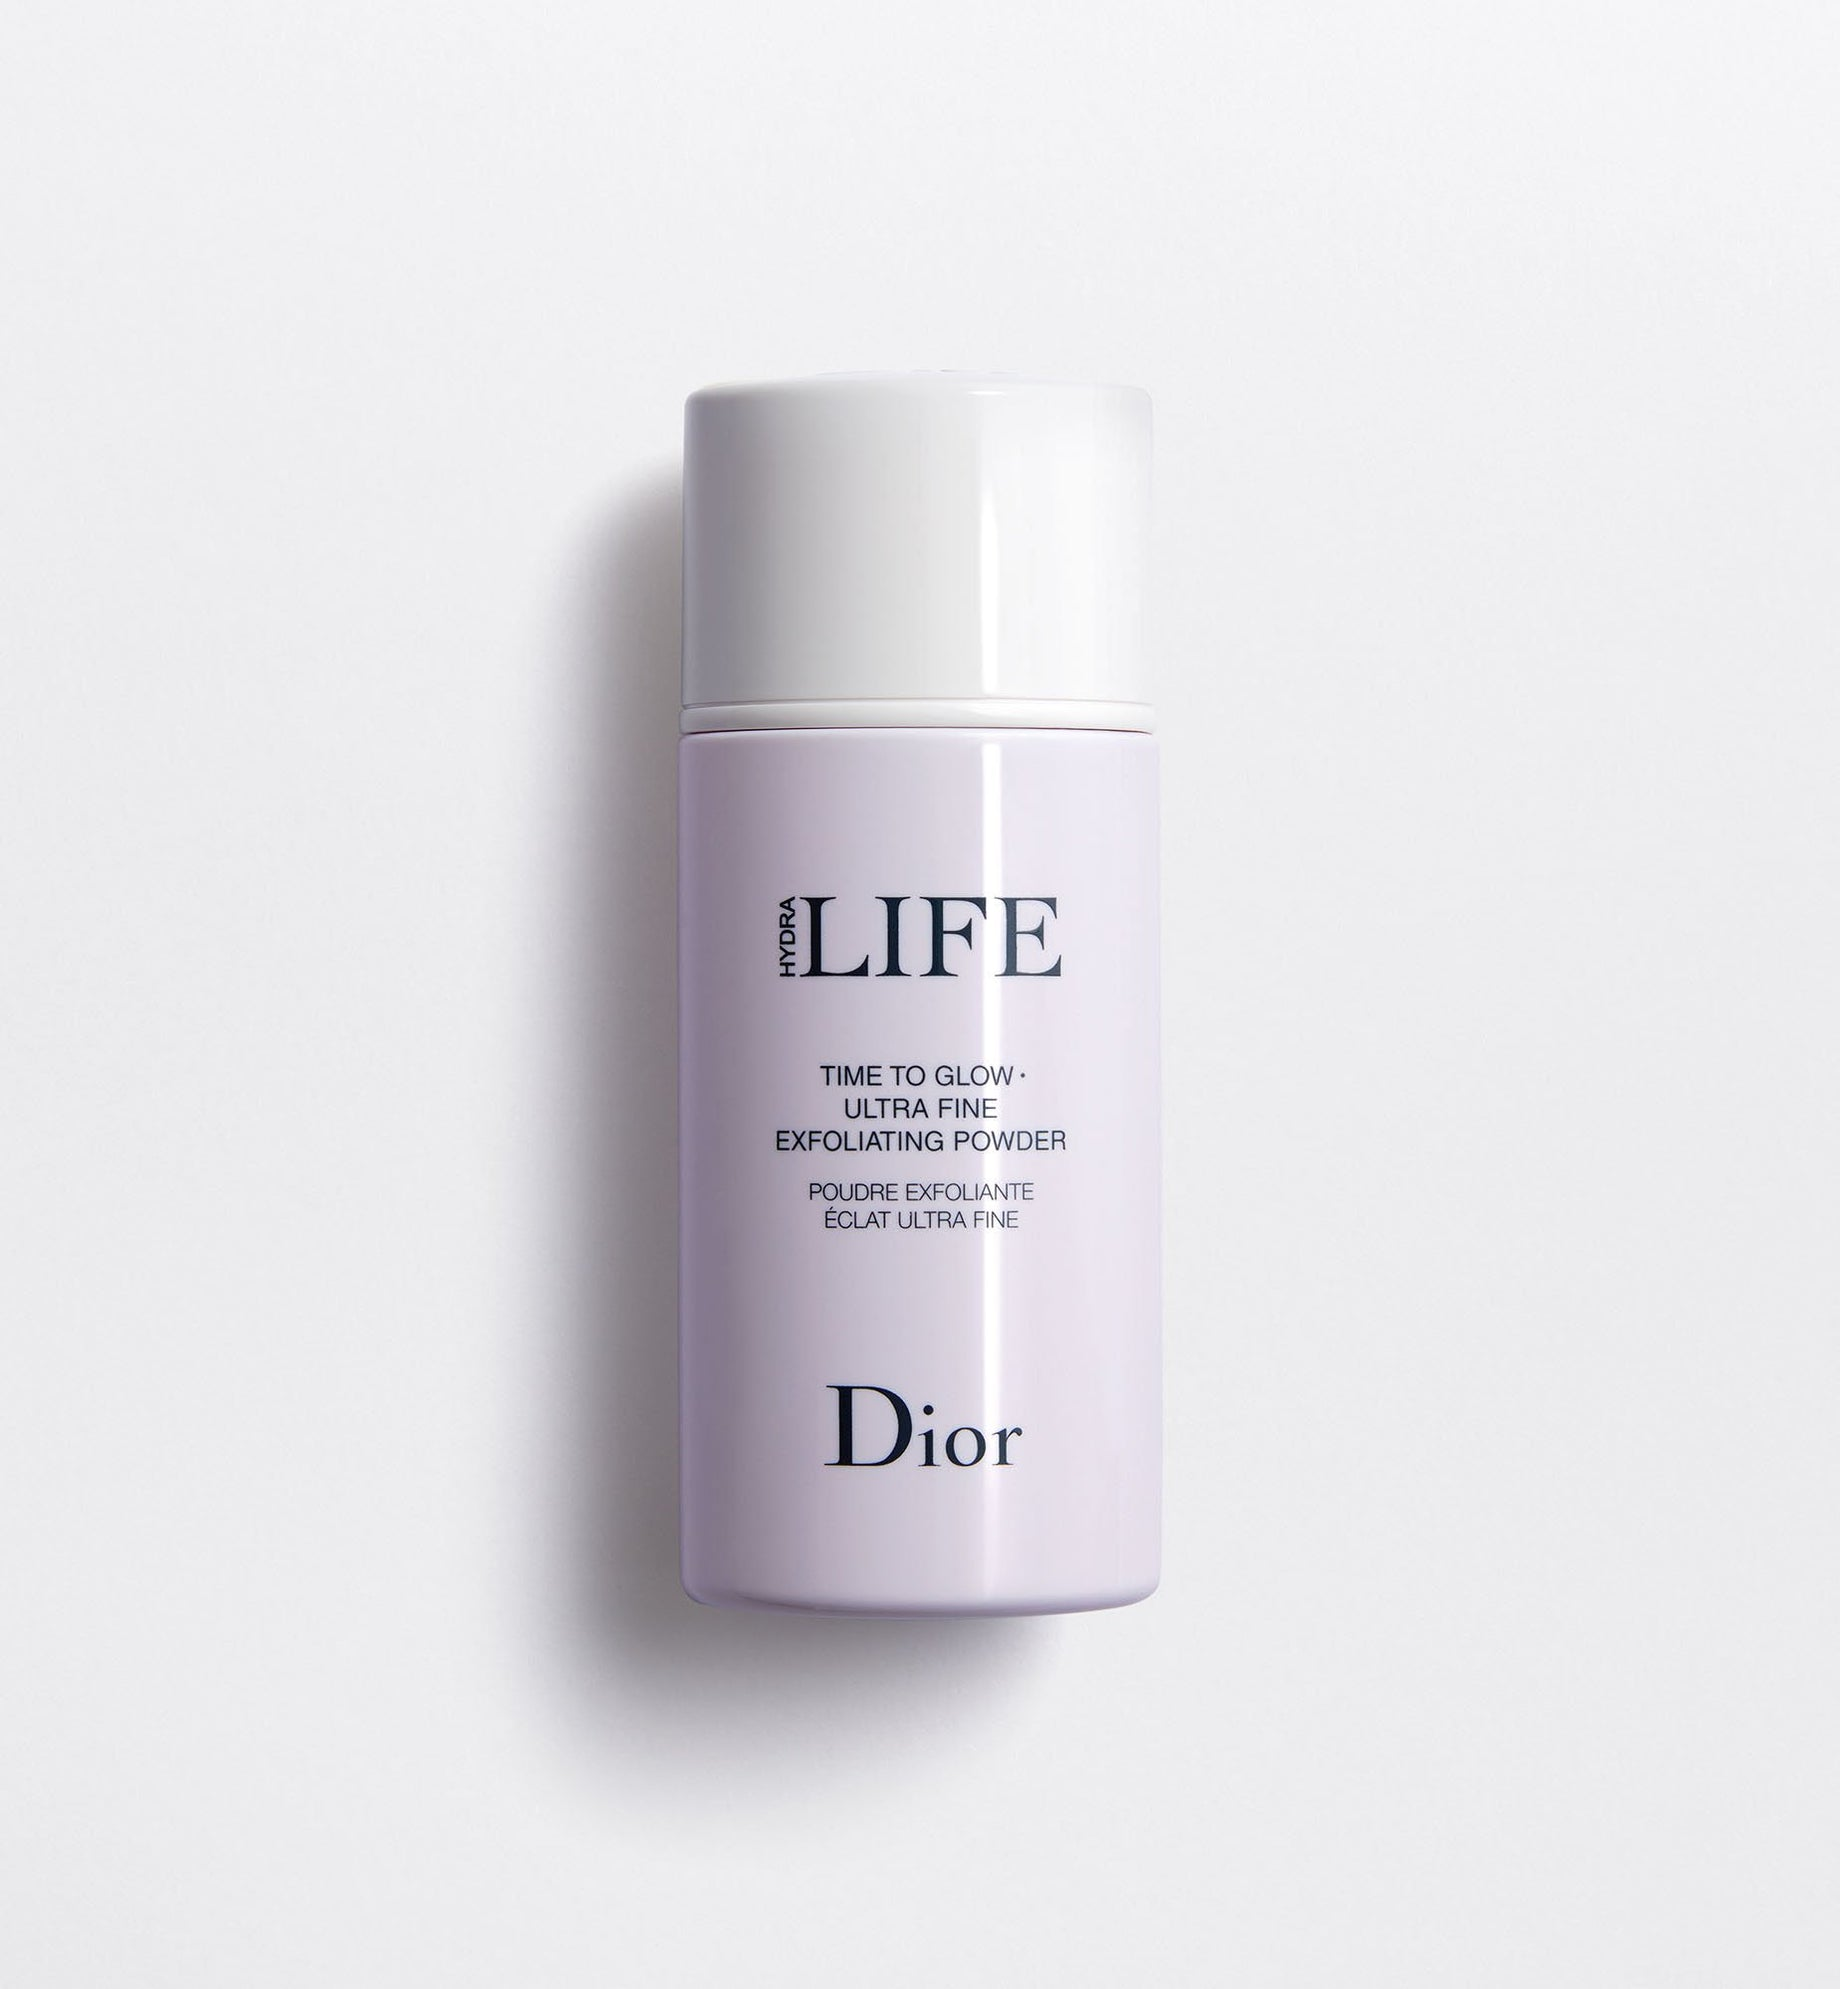 DIOR HYDRA LIFE TIME TO GLOW - ULTRA FINE EXFOLIATING POWDER